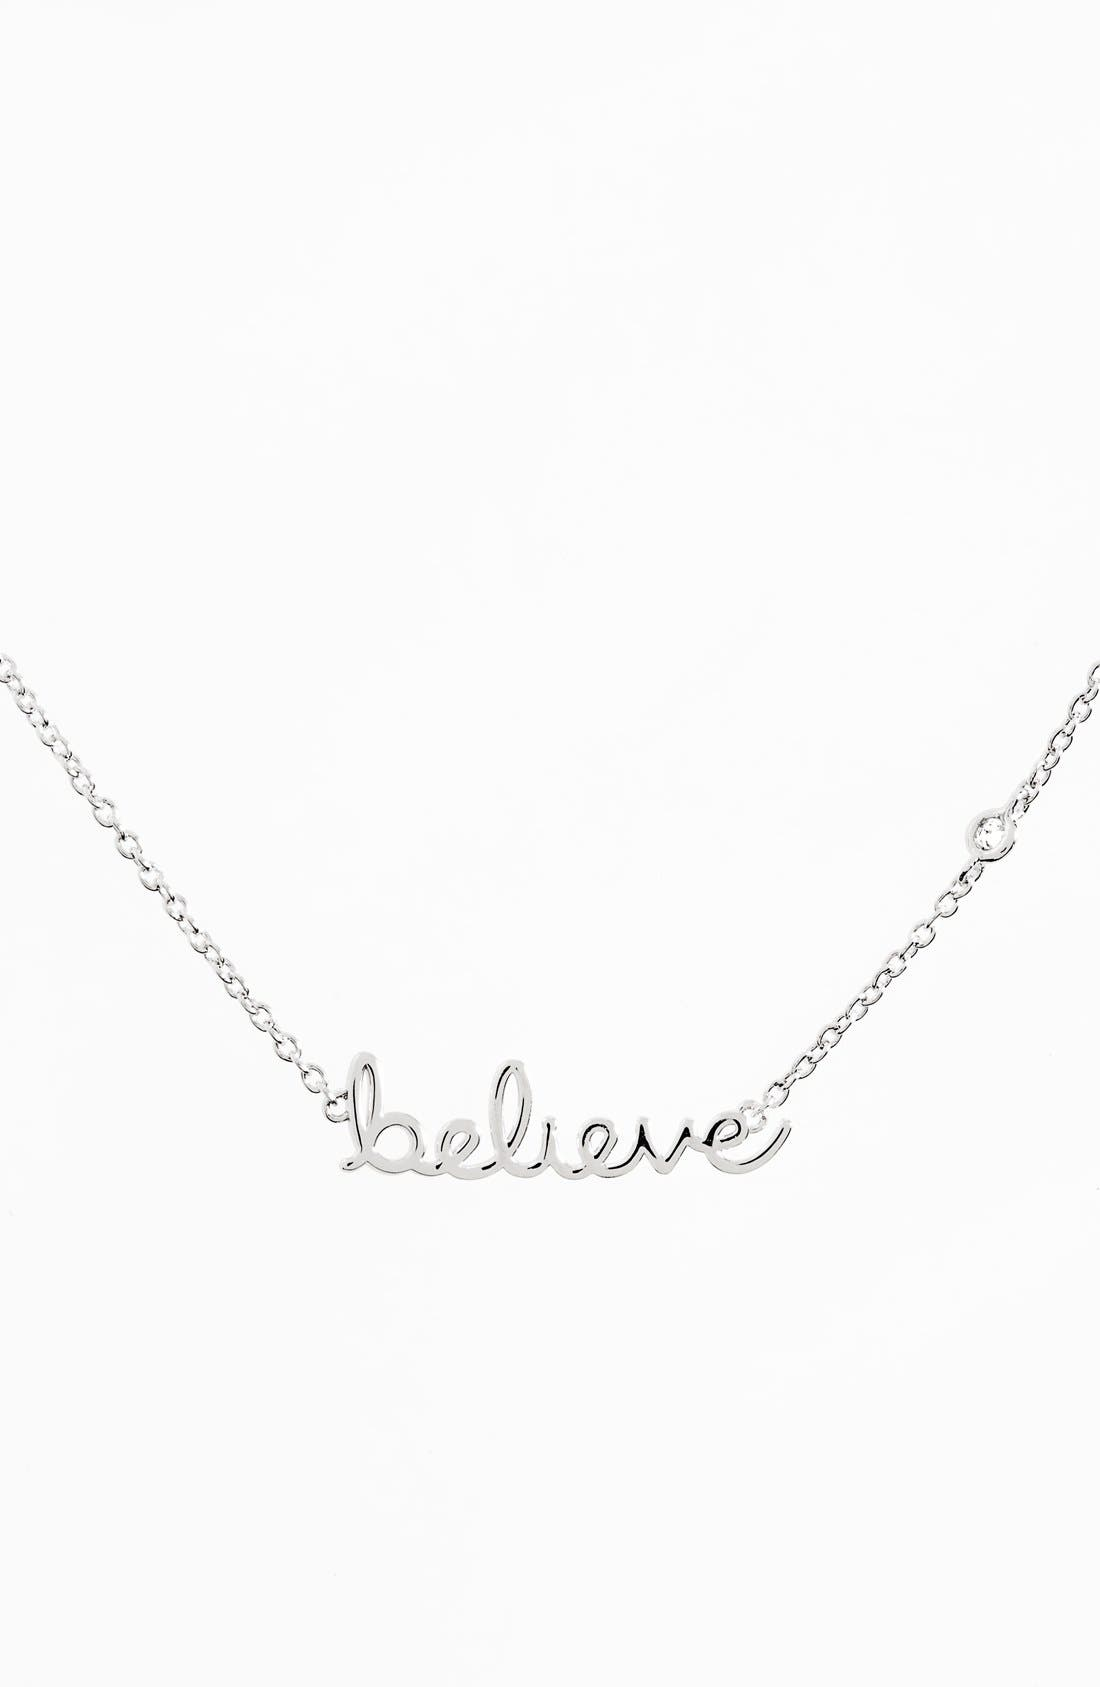 'Believe' Necklace,                             Main thumbnail 1, color,                             SILVER